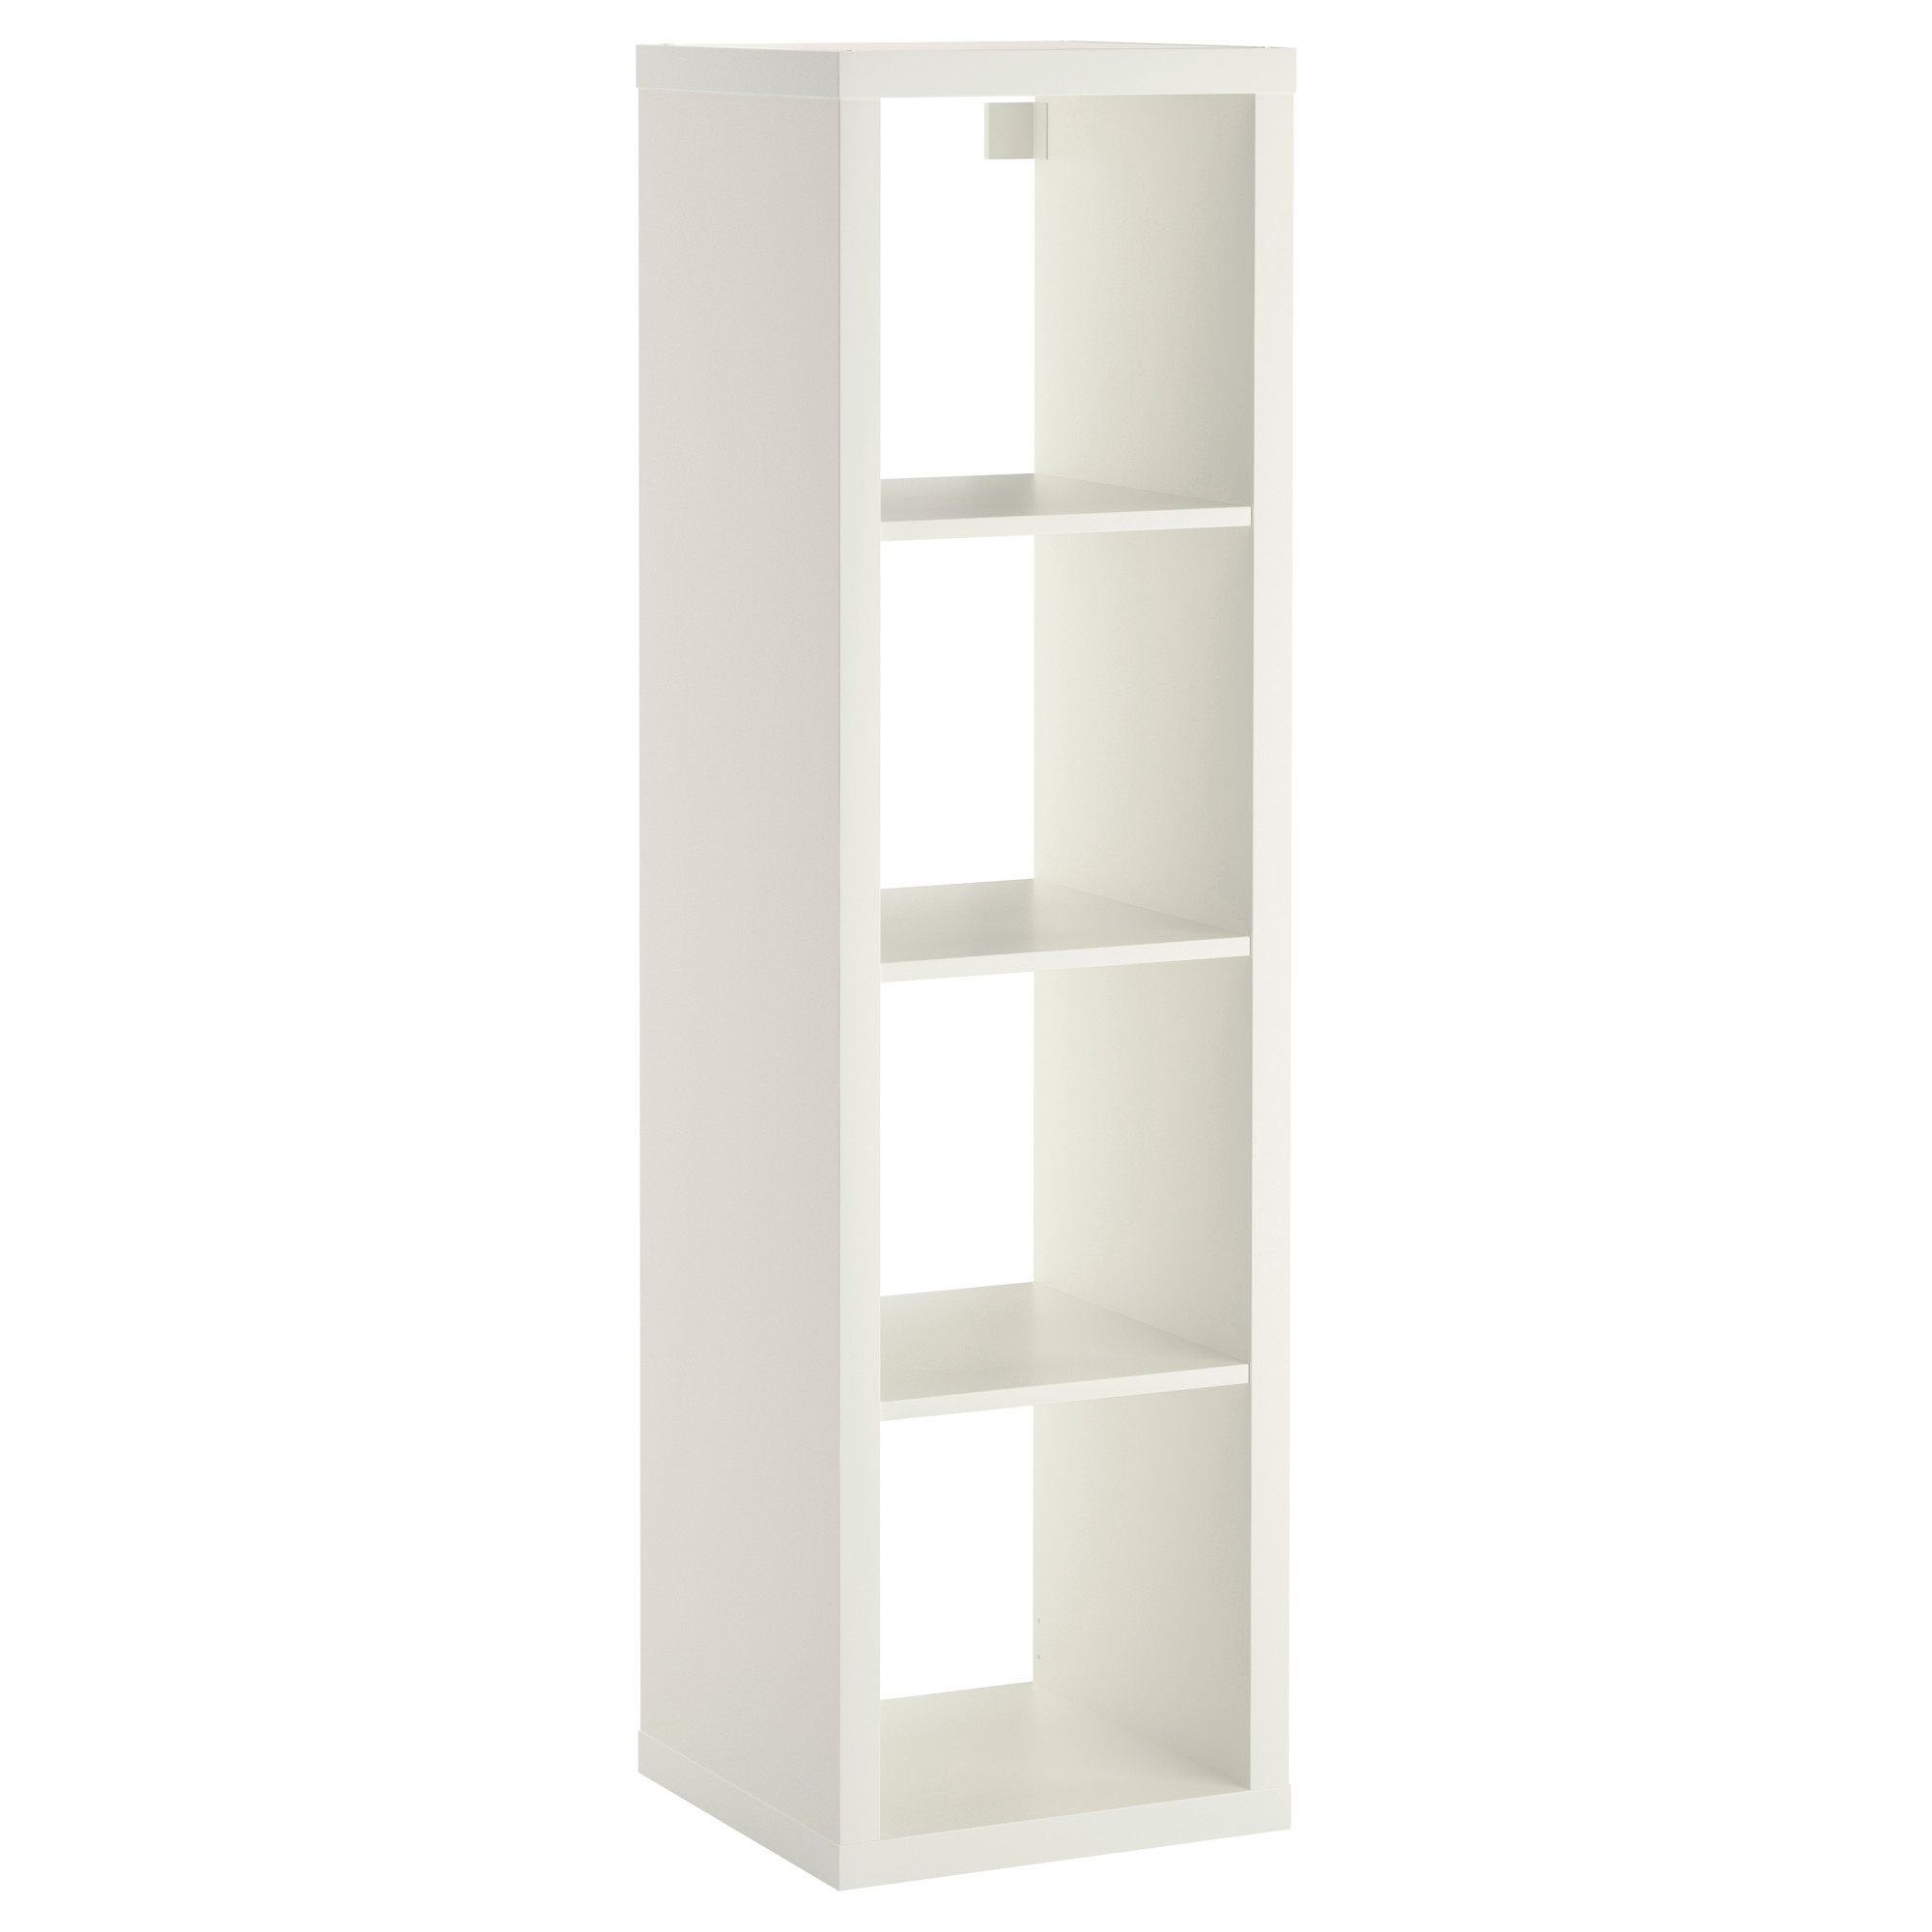 Newest Ikea White Bookcases Throughout Kallax Shelf Unit – White – Ikea (View 15 of 15)